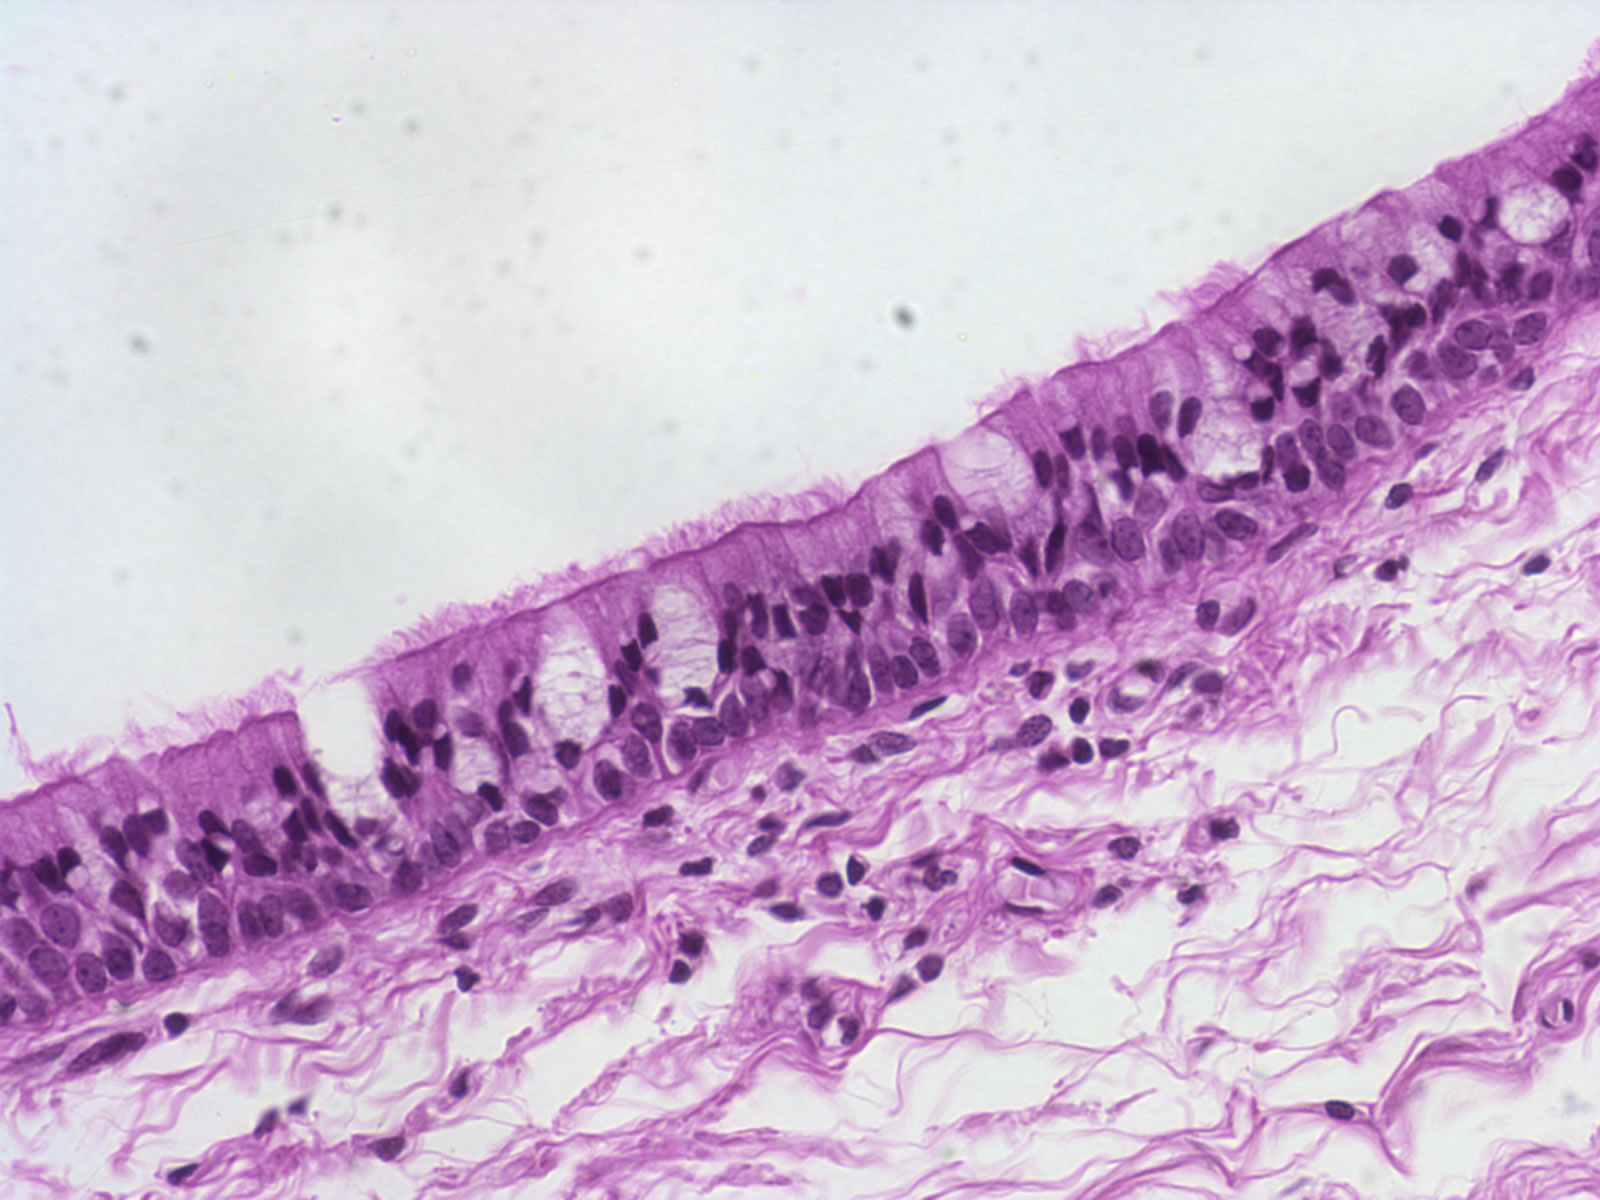 epithelium tissue Classification of (animal) tissue types - epithelial tissue, connective tissue, muscular tissue, nervous tissue identifying the tissues within each category with brief descriptions and examples.